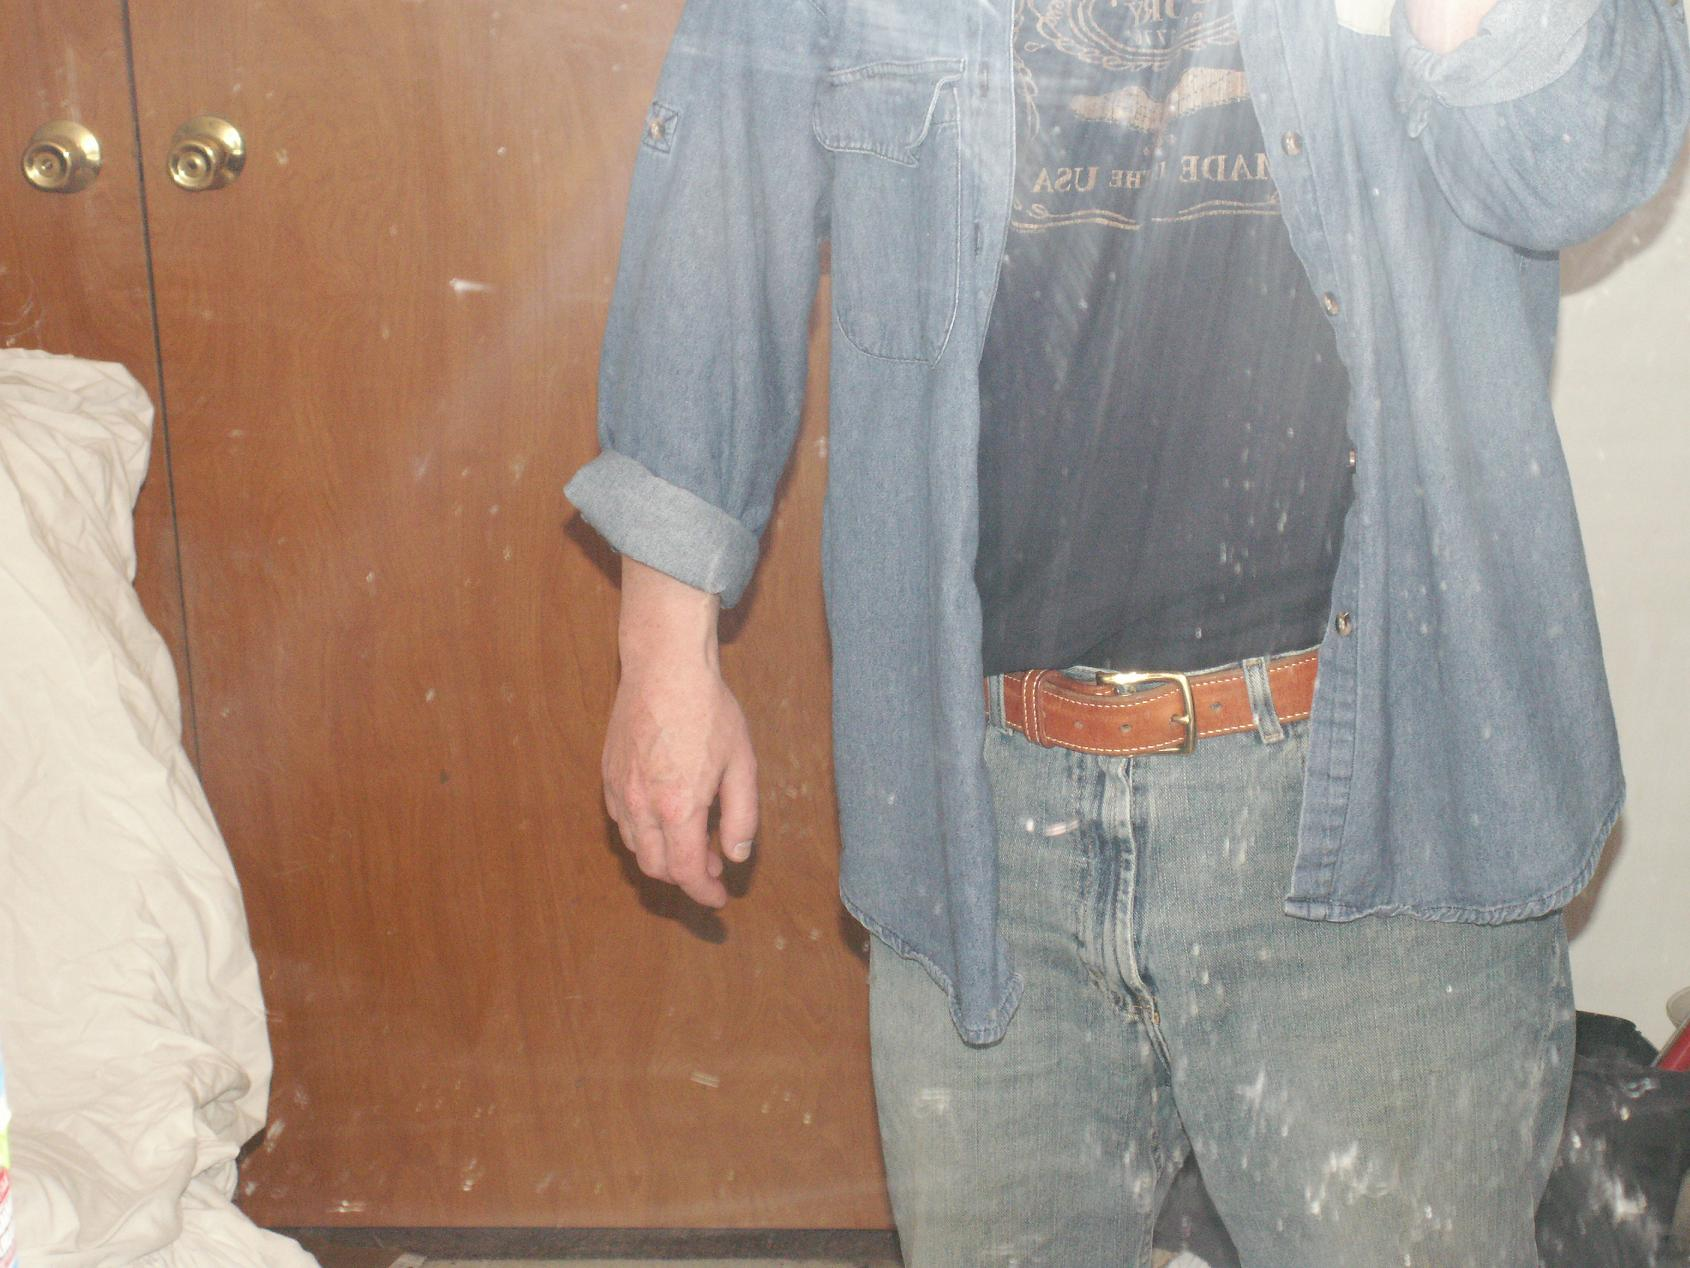 Let's See Your Pic's - How You Carry Concealed.-concealed-036.jpg